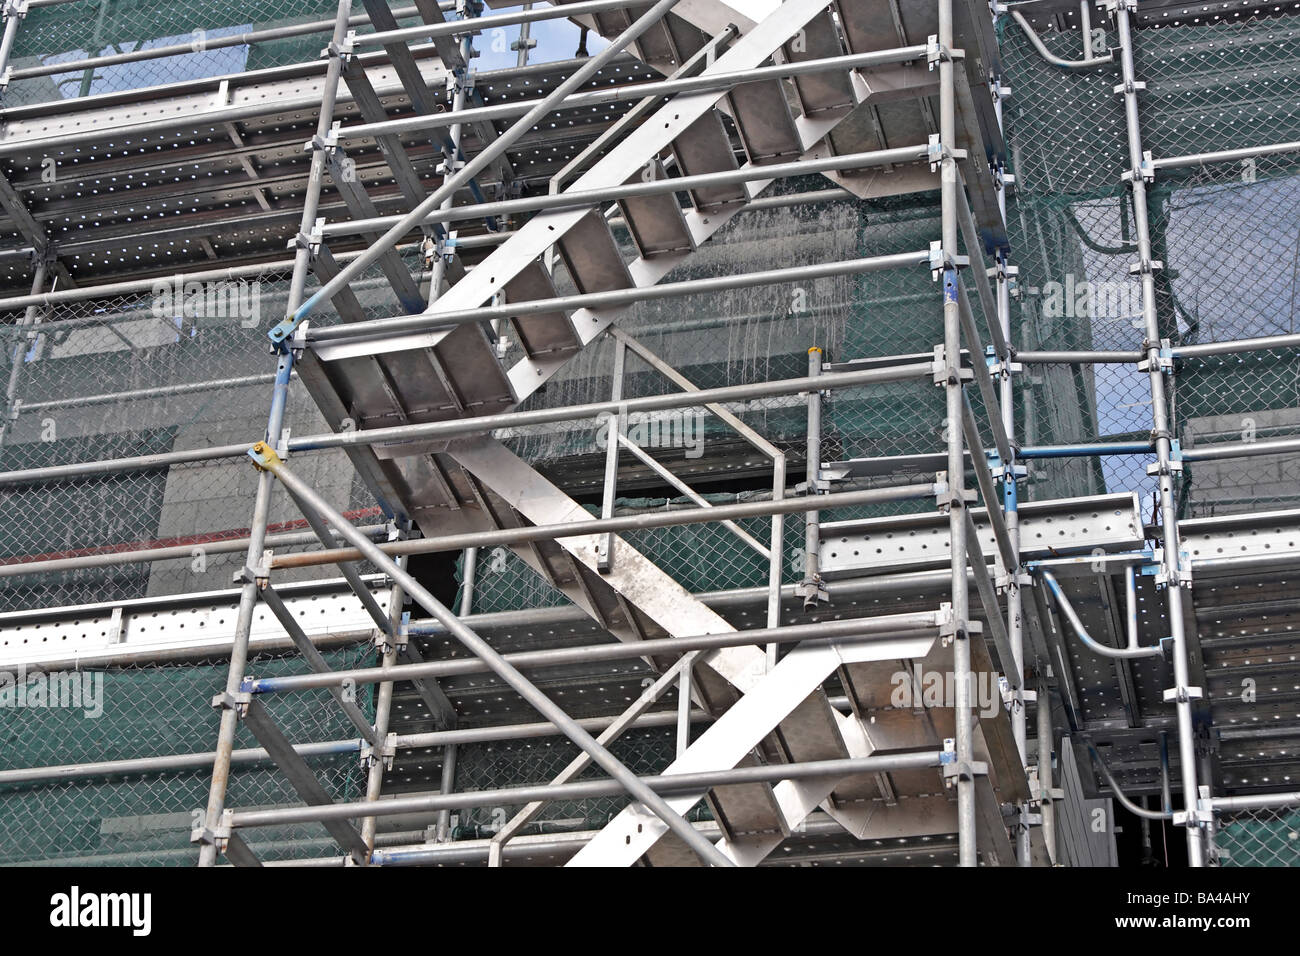 Building Construction Showing Scaffolding Access Stairs And Protective  Netting   Stock Image